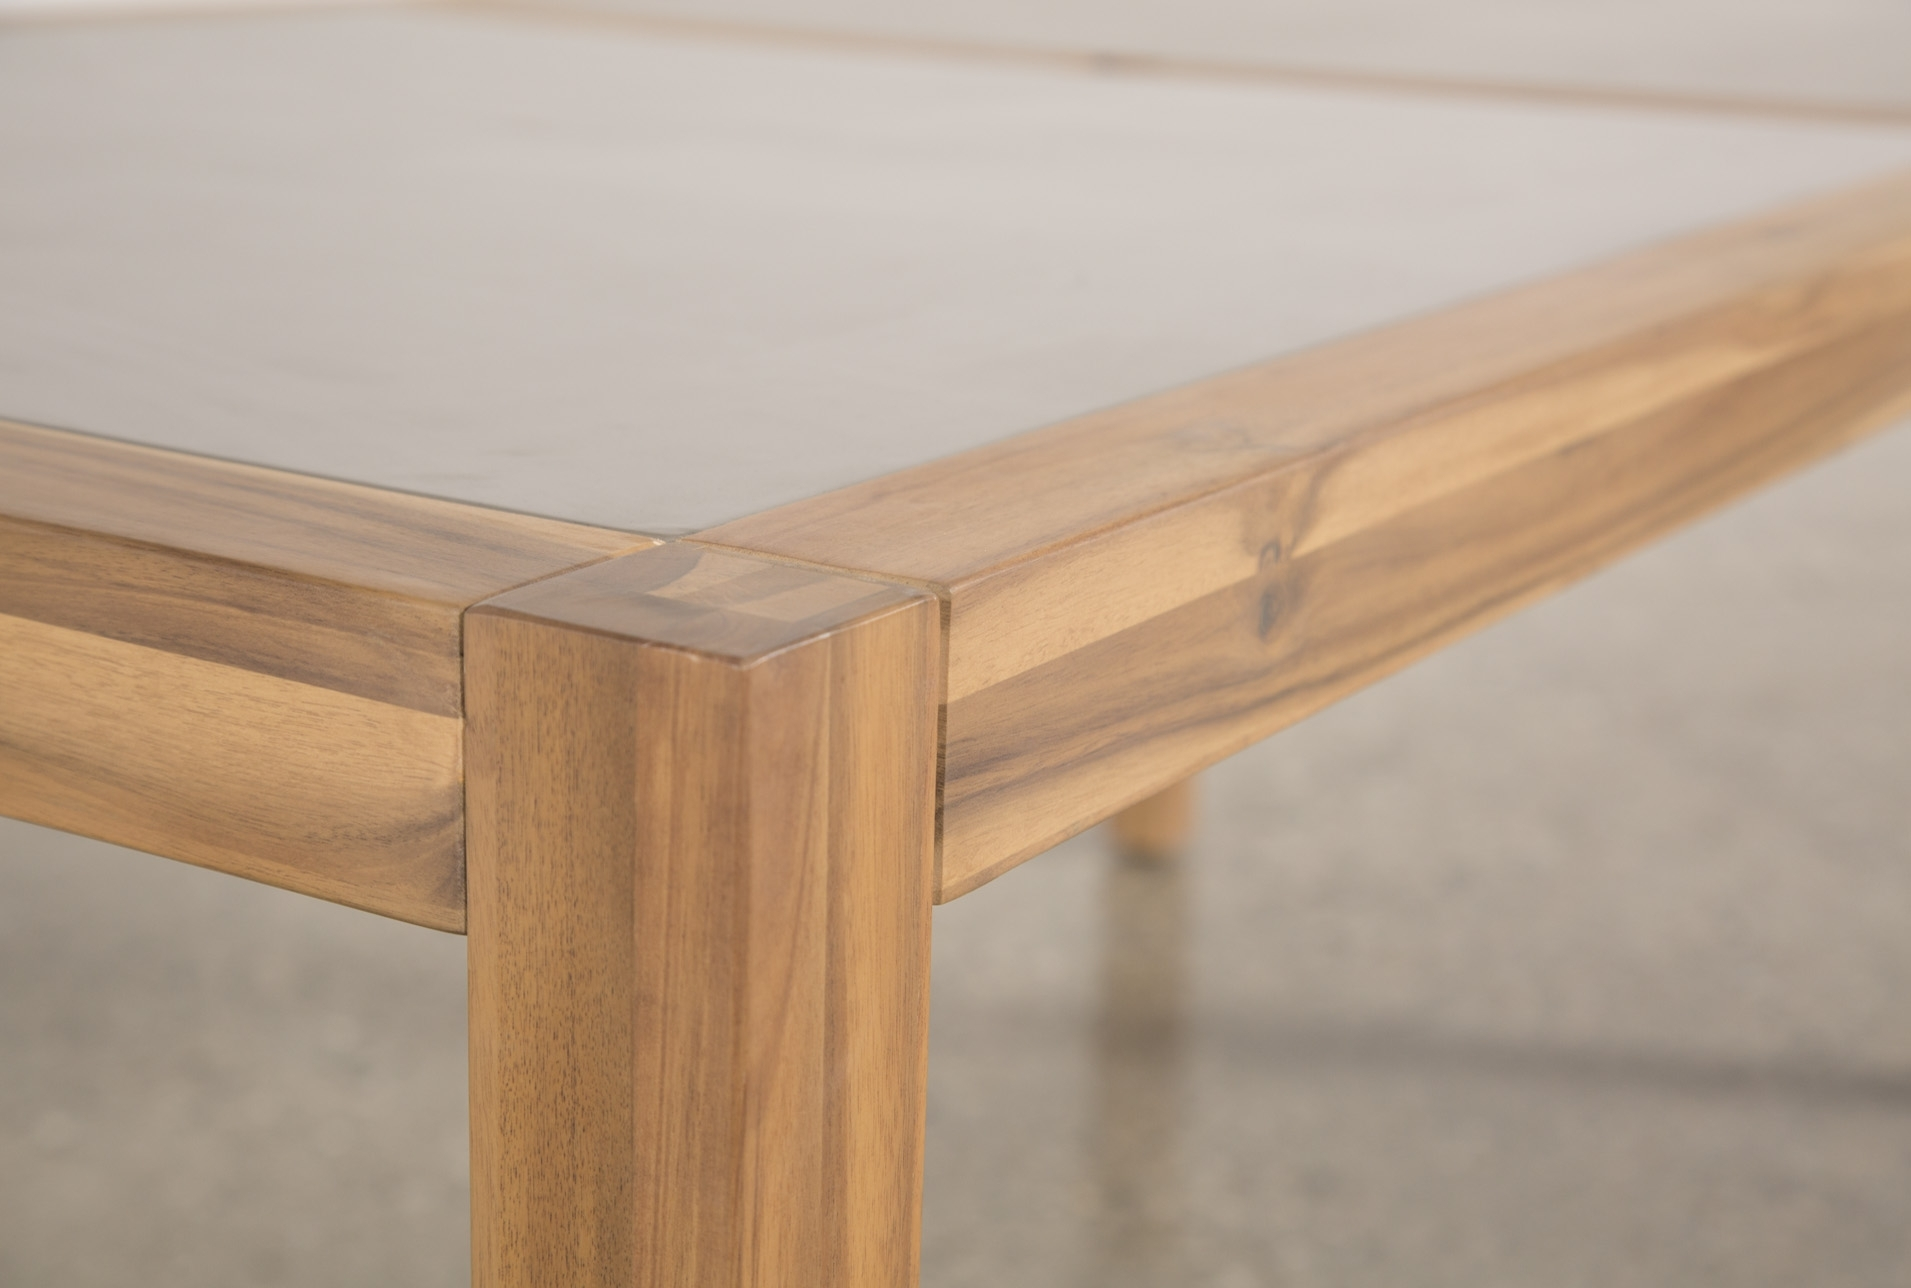 Outdoor Sienna Dining Table | Products Pertaining To Most Recent Outdoor Sienna Dining Tables (Image 6 of 20)